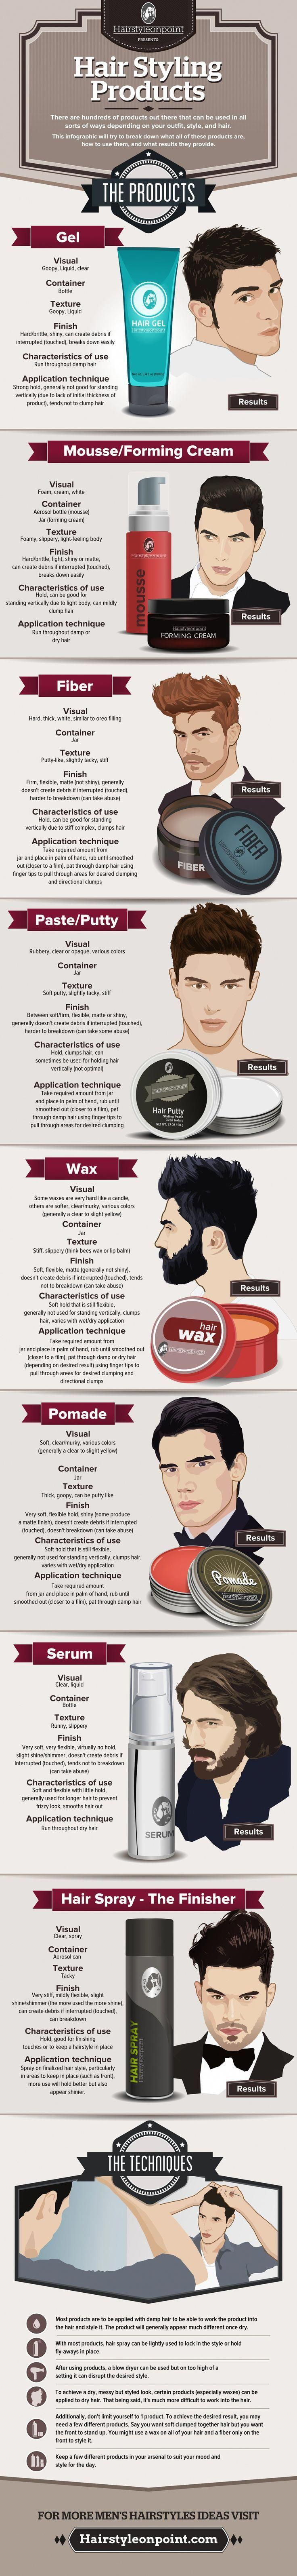 Simple Guide To Men S Hairstyling Products And How To Use Them Infographic Mens Hairstyles Long Hair Styles Hair And Beard Styles